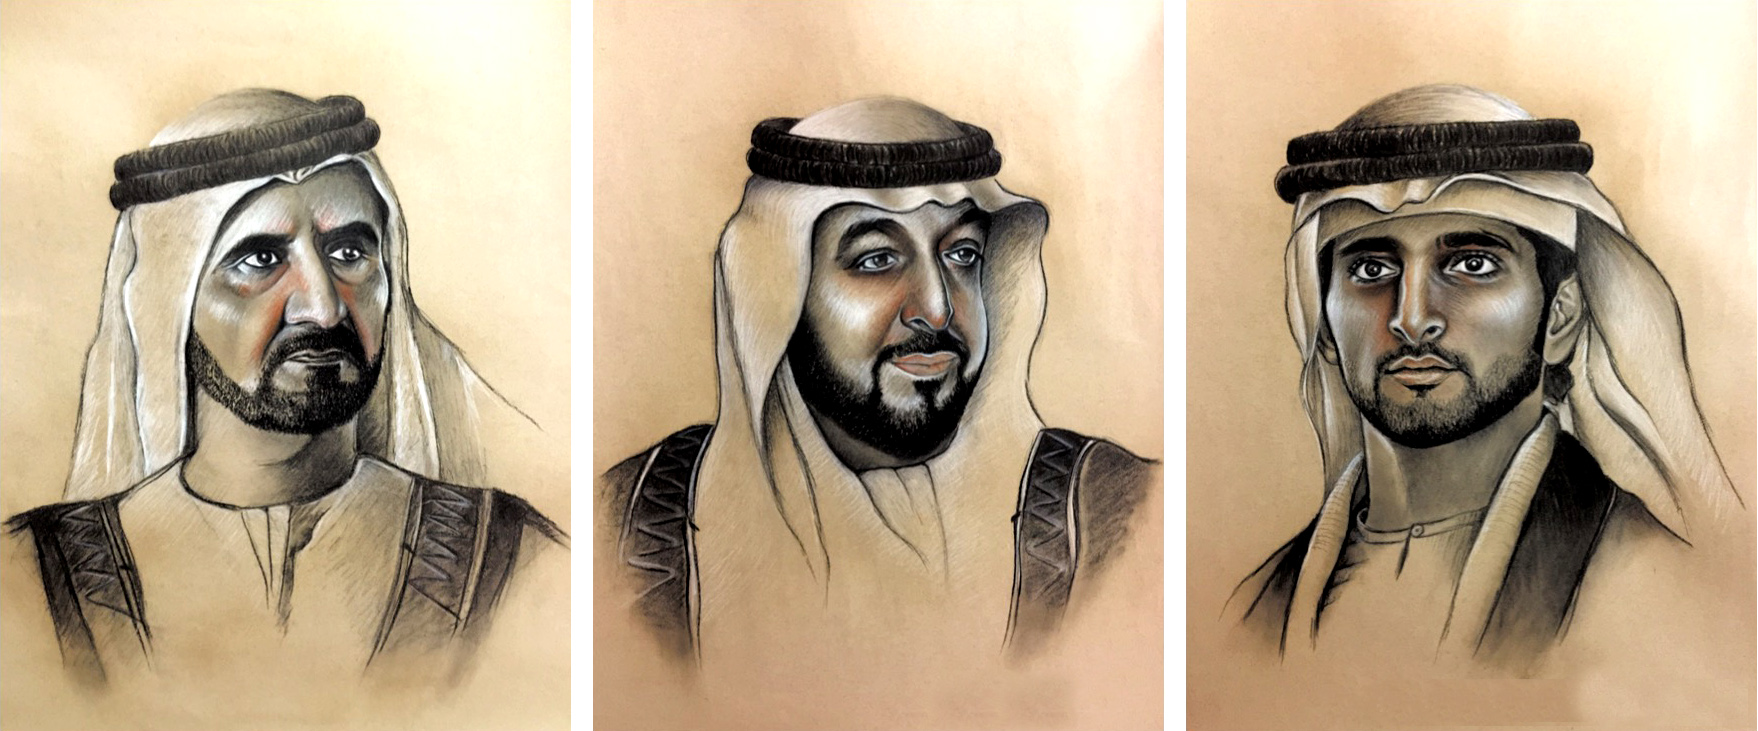 capsule-arts-products-sheikh-portraits-drawing.jpg